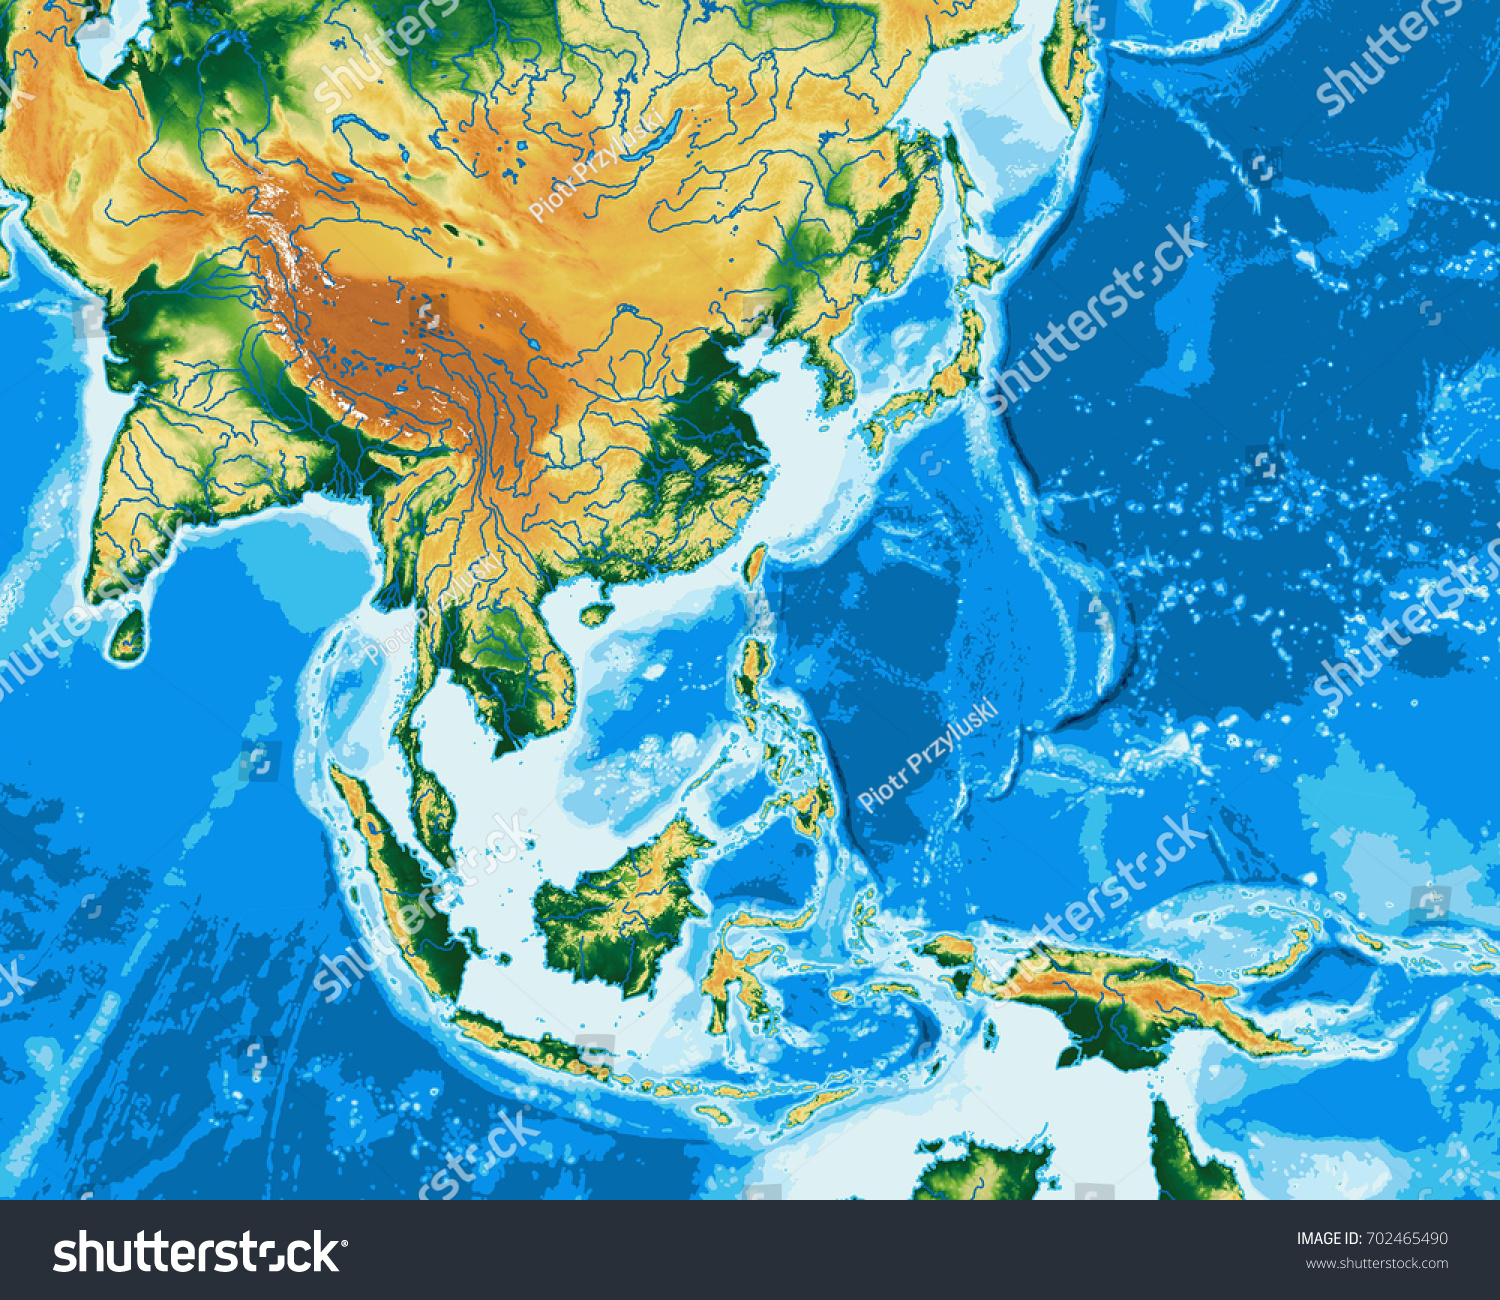 South East Asia Physical Map Elements Stock Illustration - Royalty ...